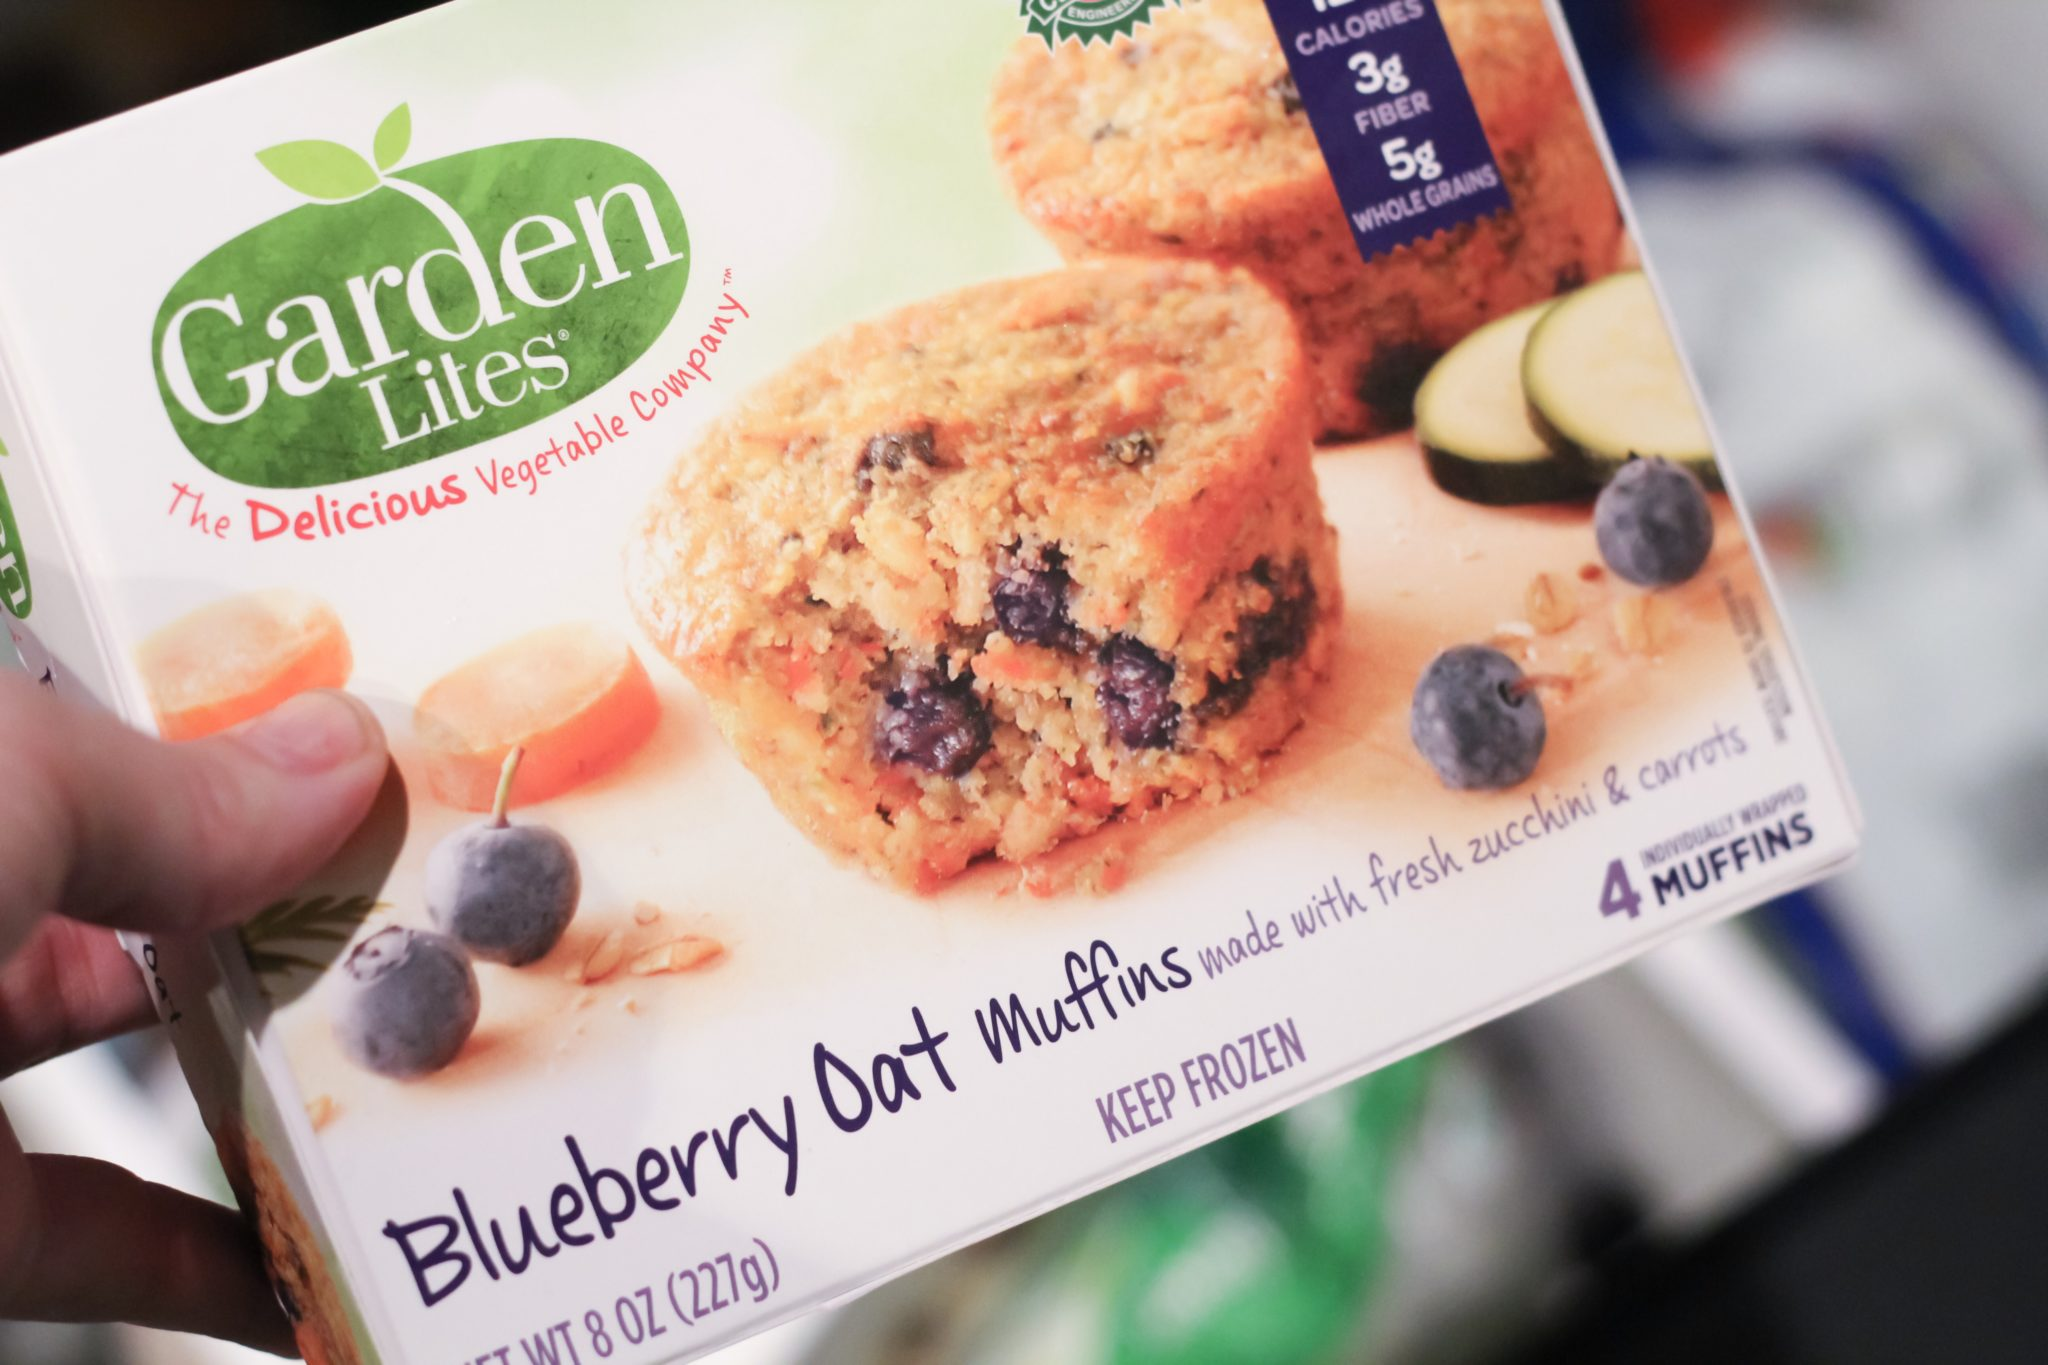 Garden Lites Blueberry Oat Muffins are packed with 33% vegetables and a great source of nutrition for kids.